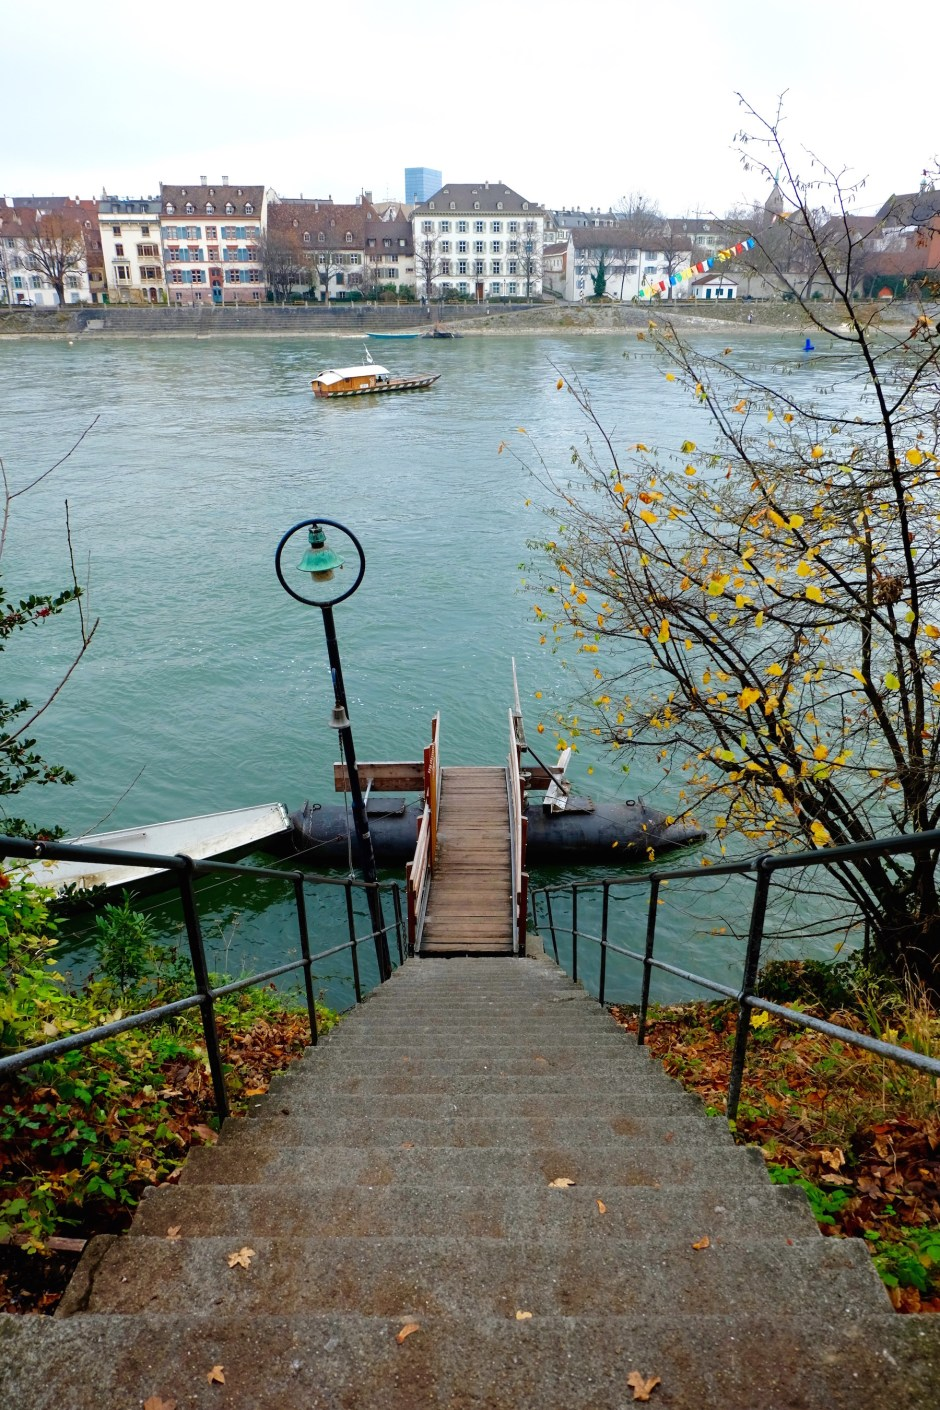 Steps to the boat